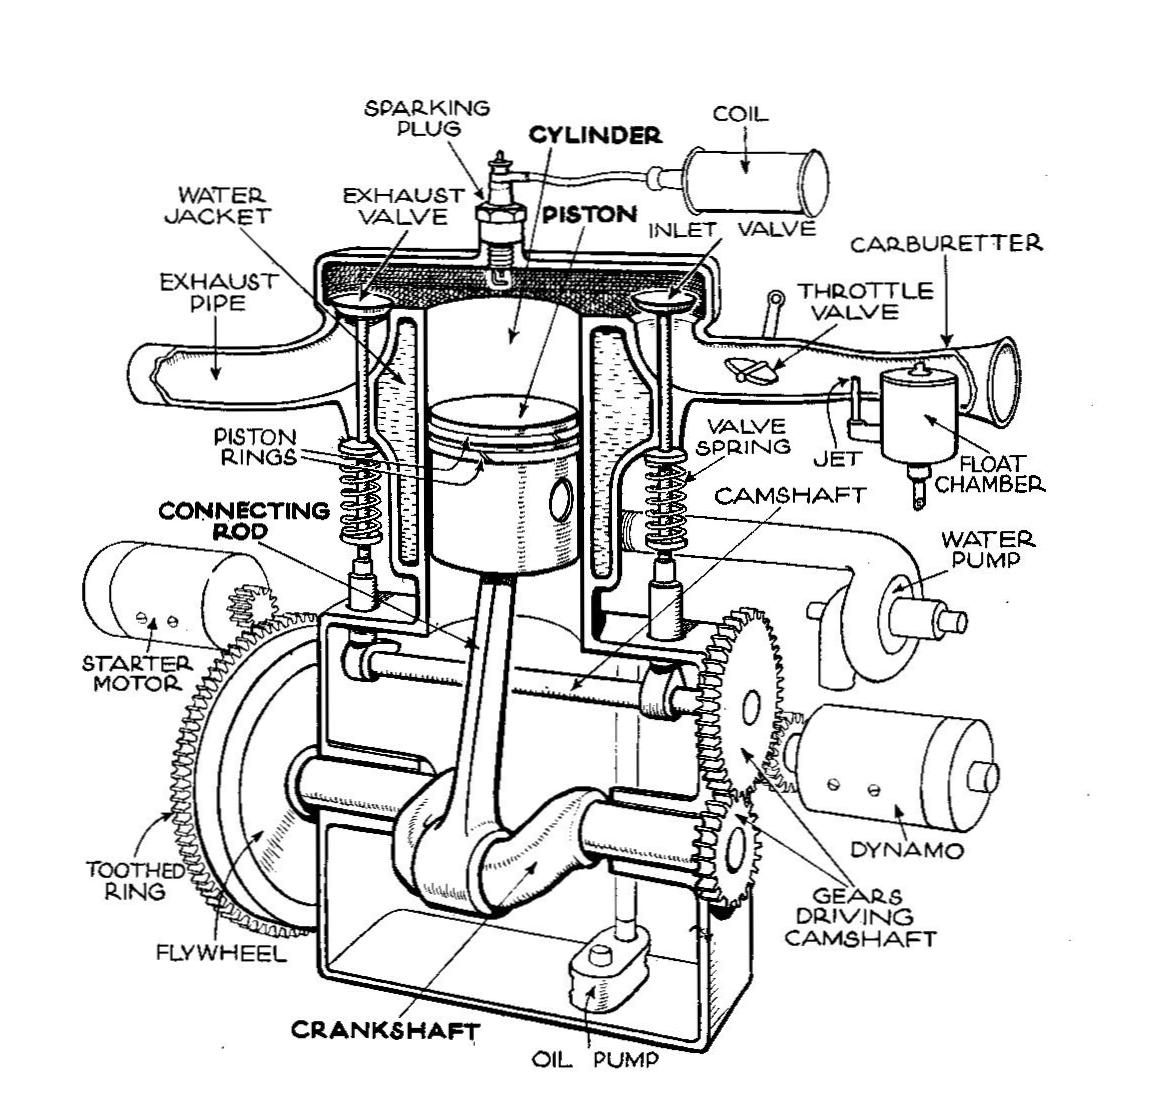 Flathead engine on gy6 carburetor diagram